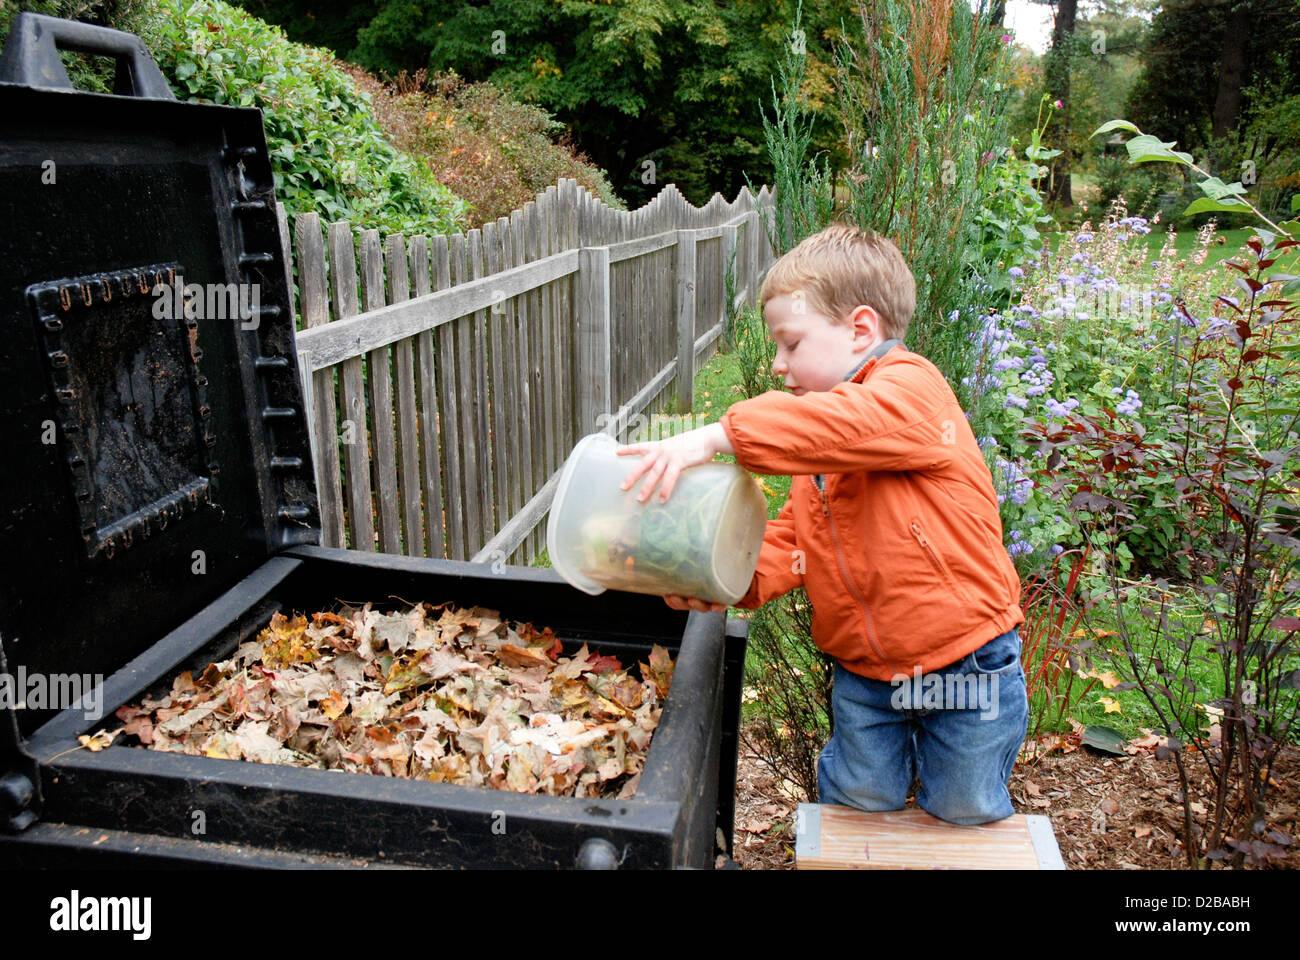 3 Year Old Boy In Massachusetts Dumping Compost - Stock Image